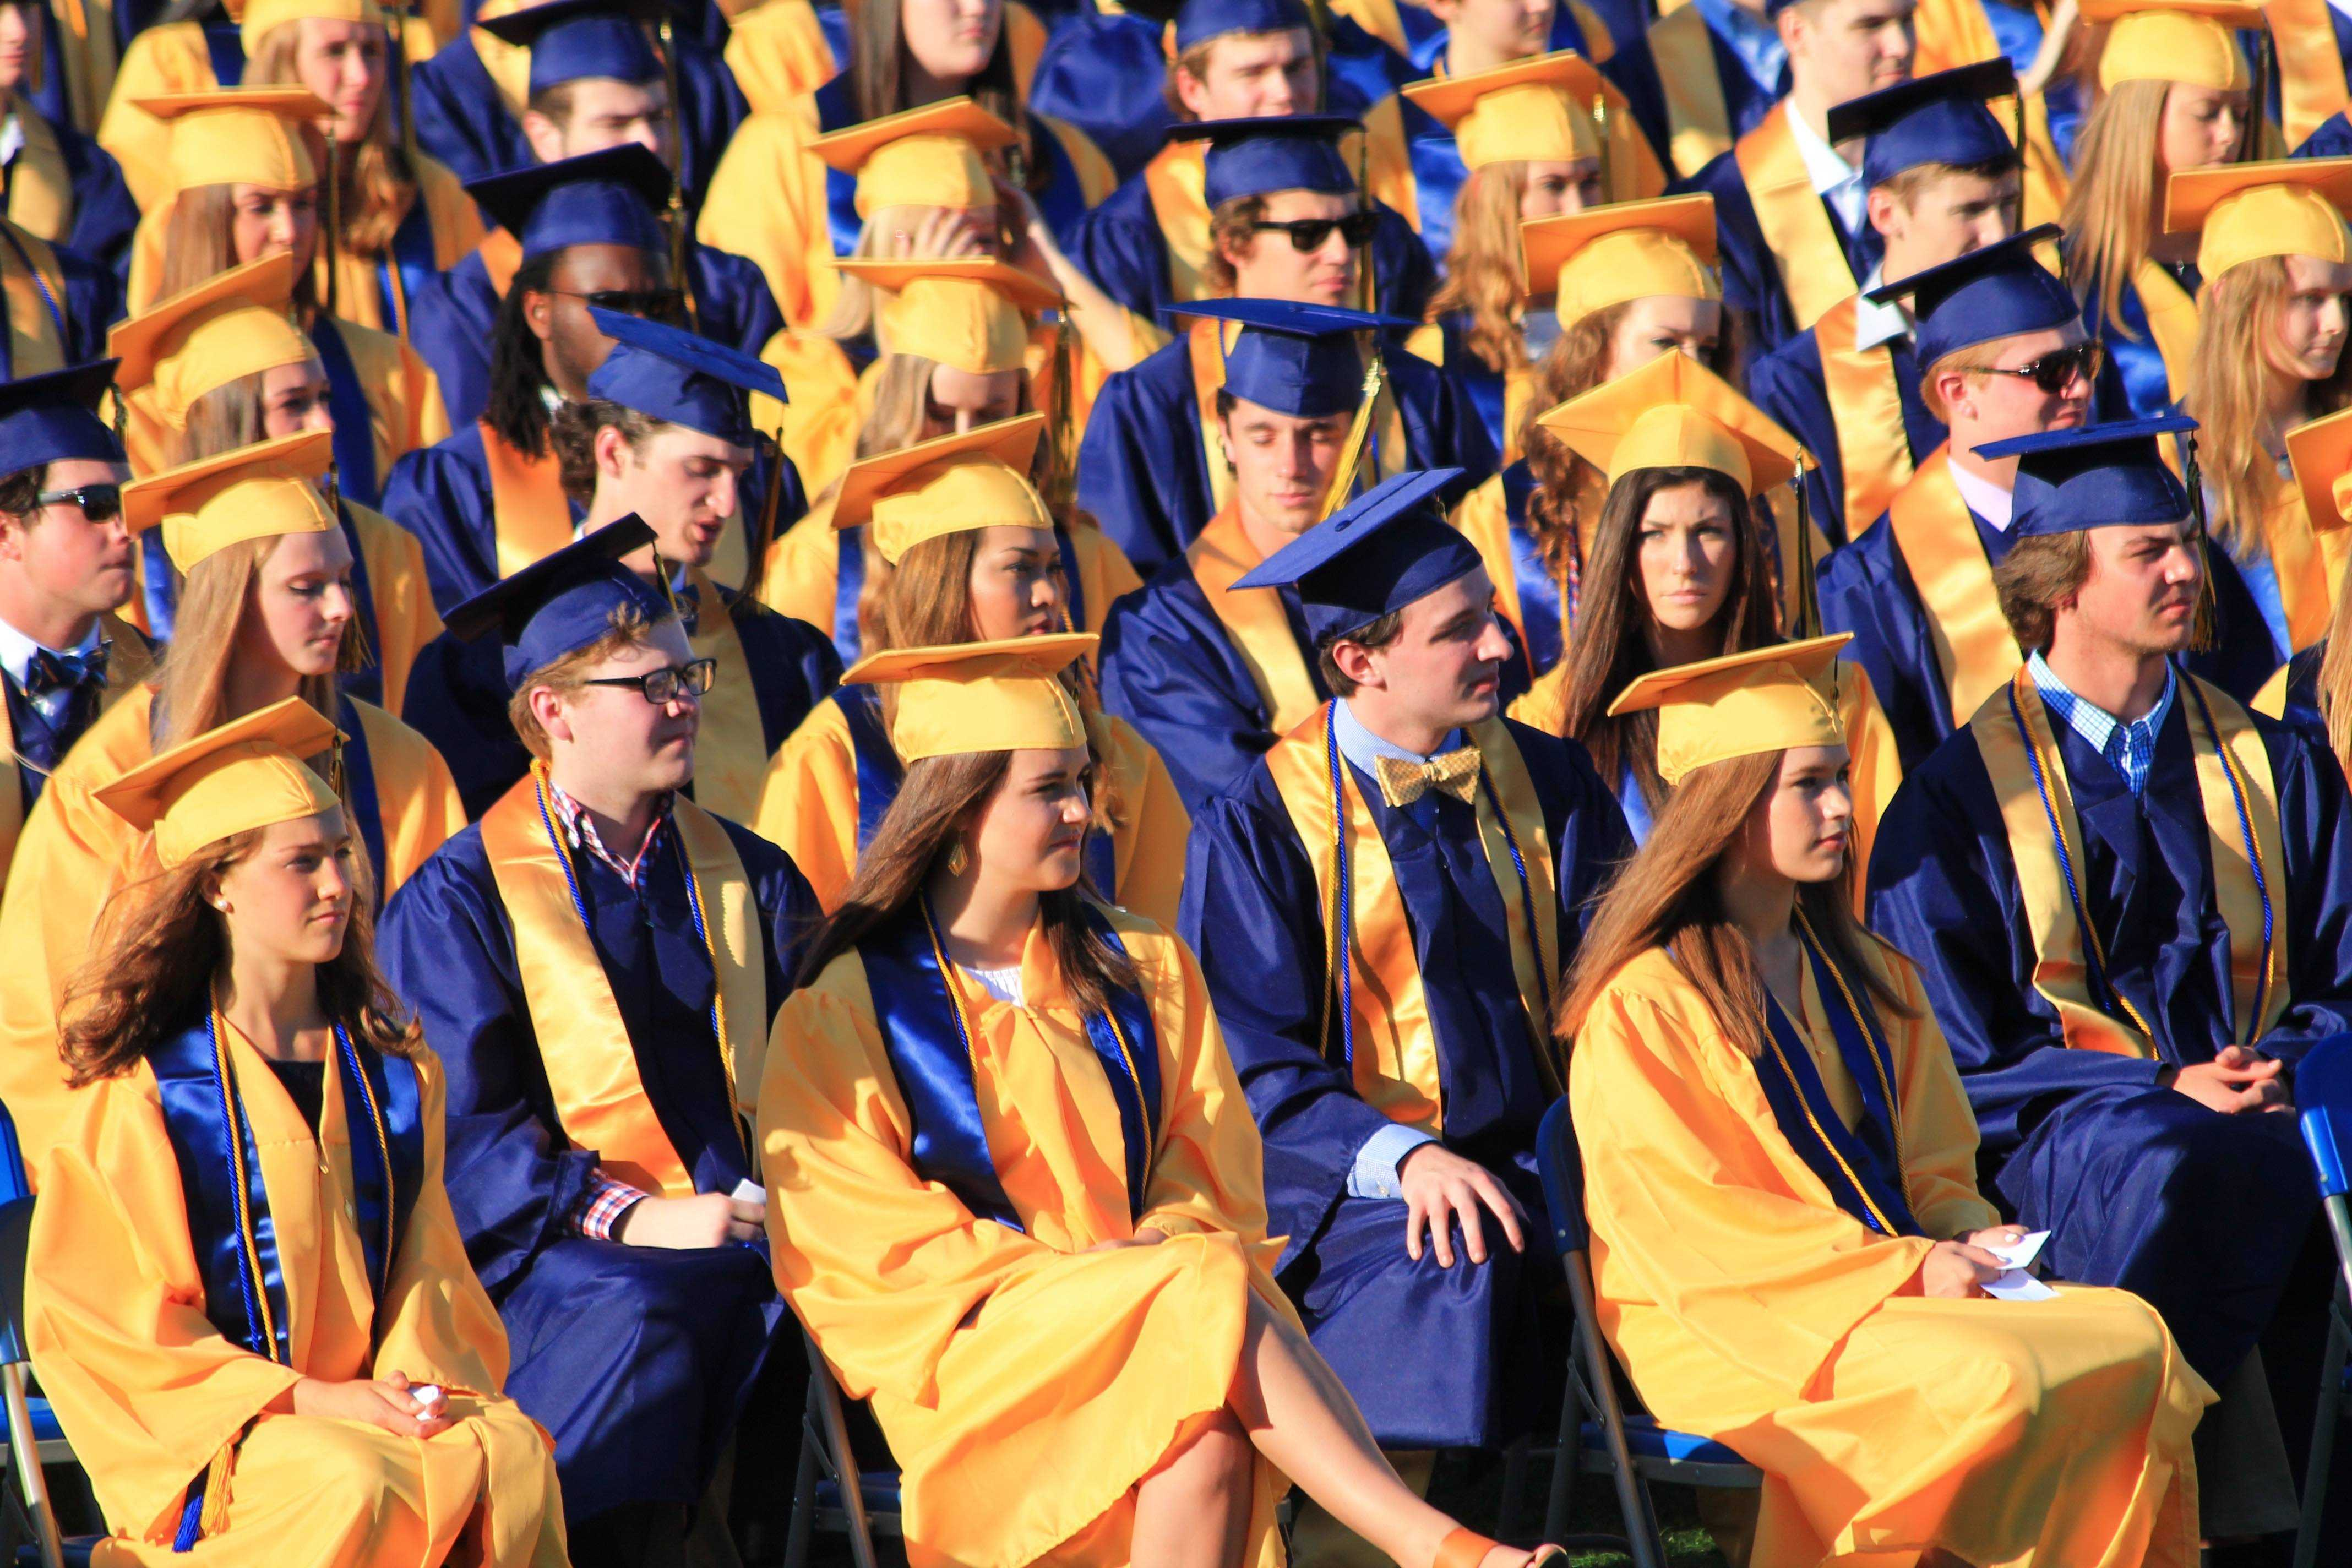 Class of 2016 lined up in rows as they listen to speeches